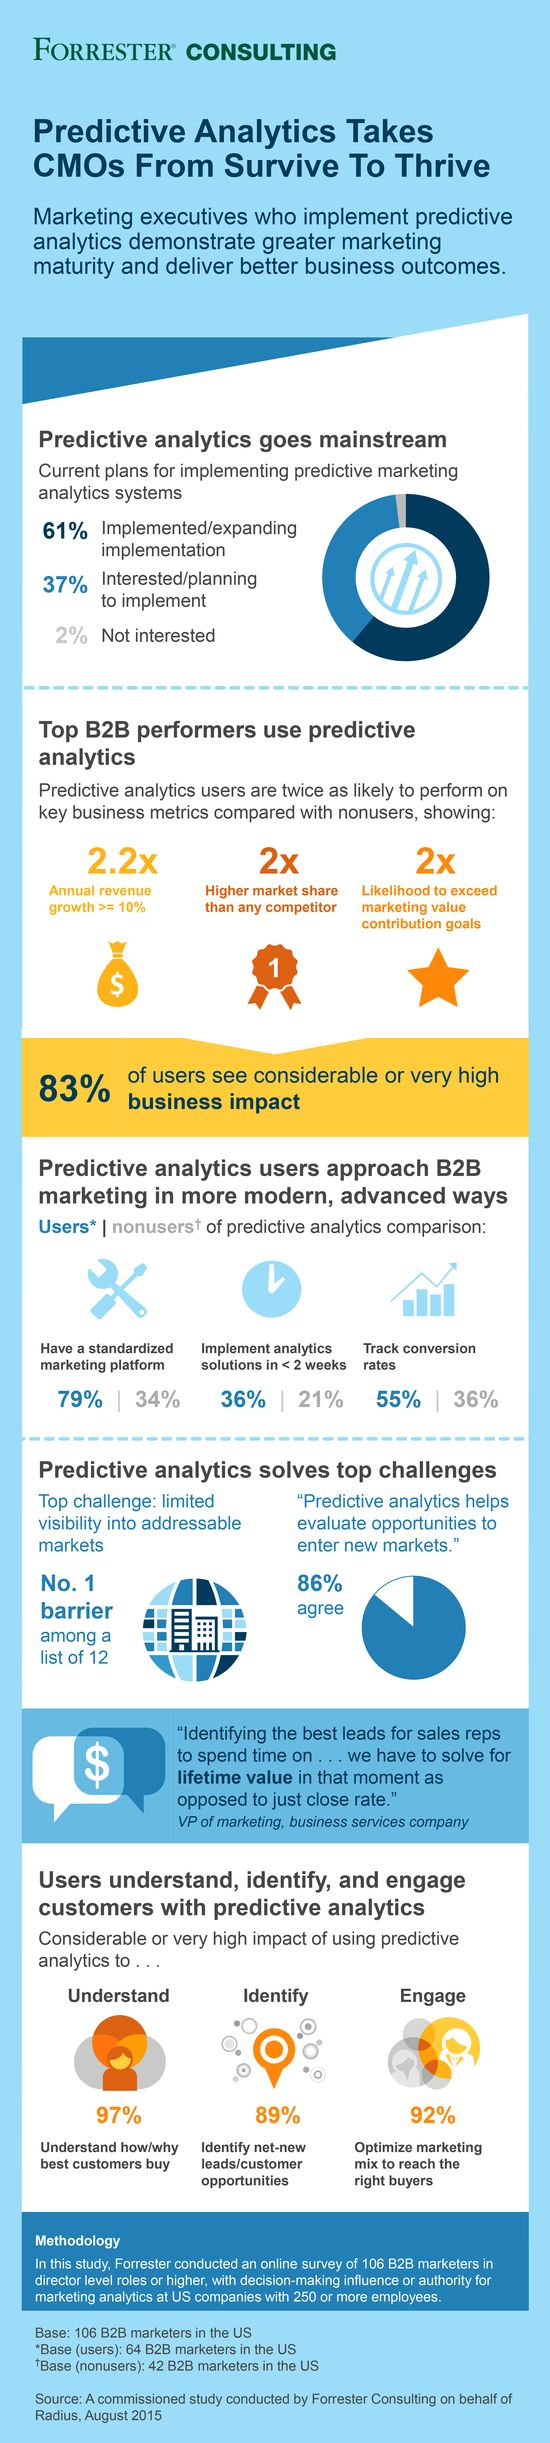 Predictive-analytics-takes-cmos-from-survive-to-thrive - Forrester Consulting